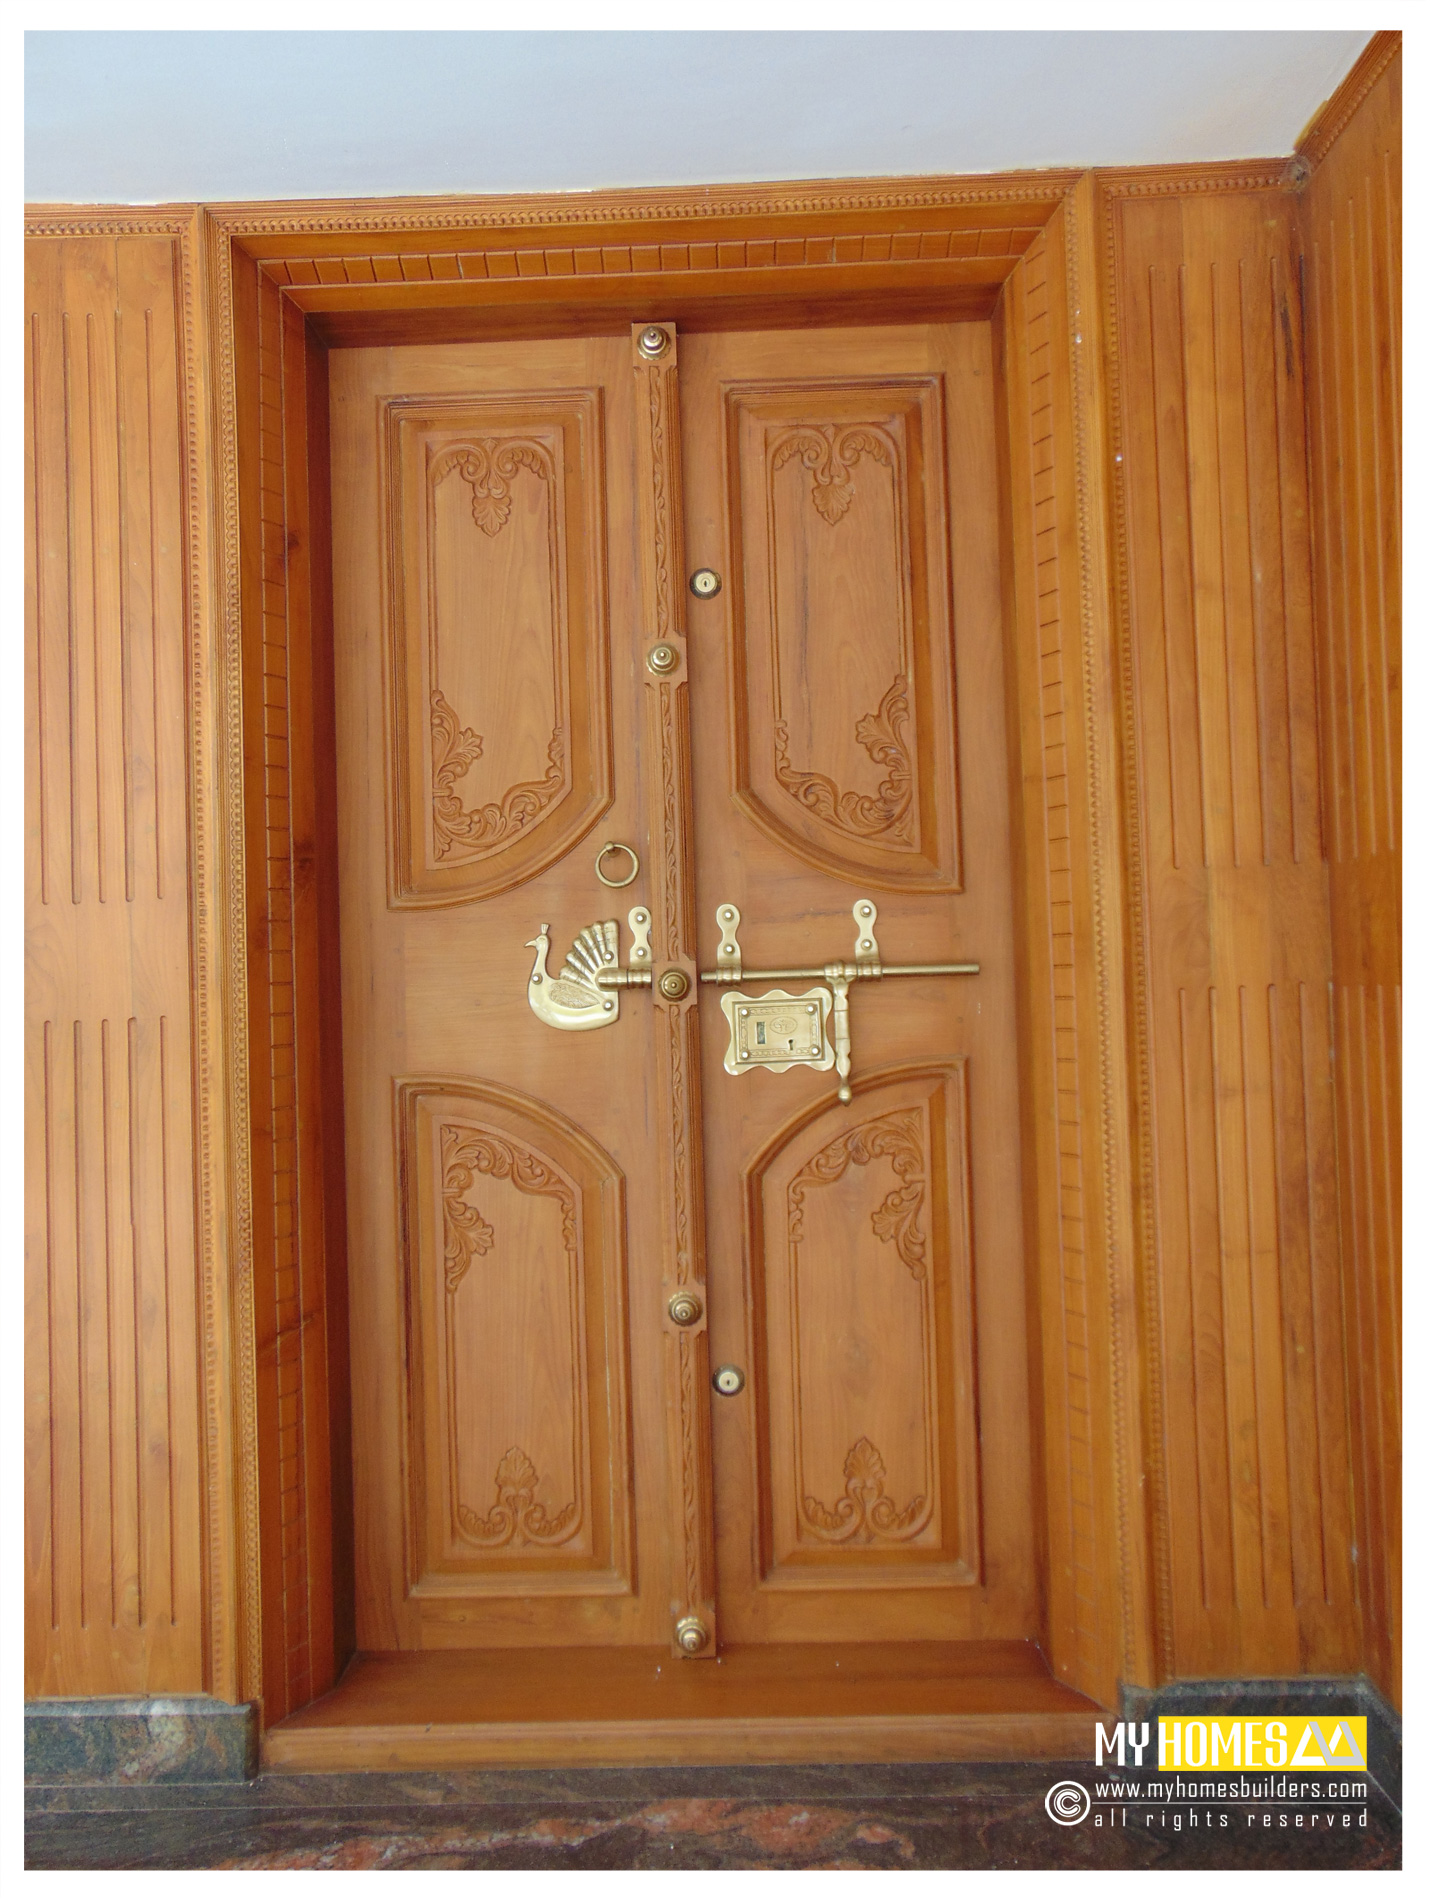 New idea for homes main door designs in kerala india for Main entrance double door design